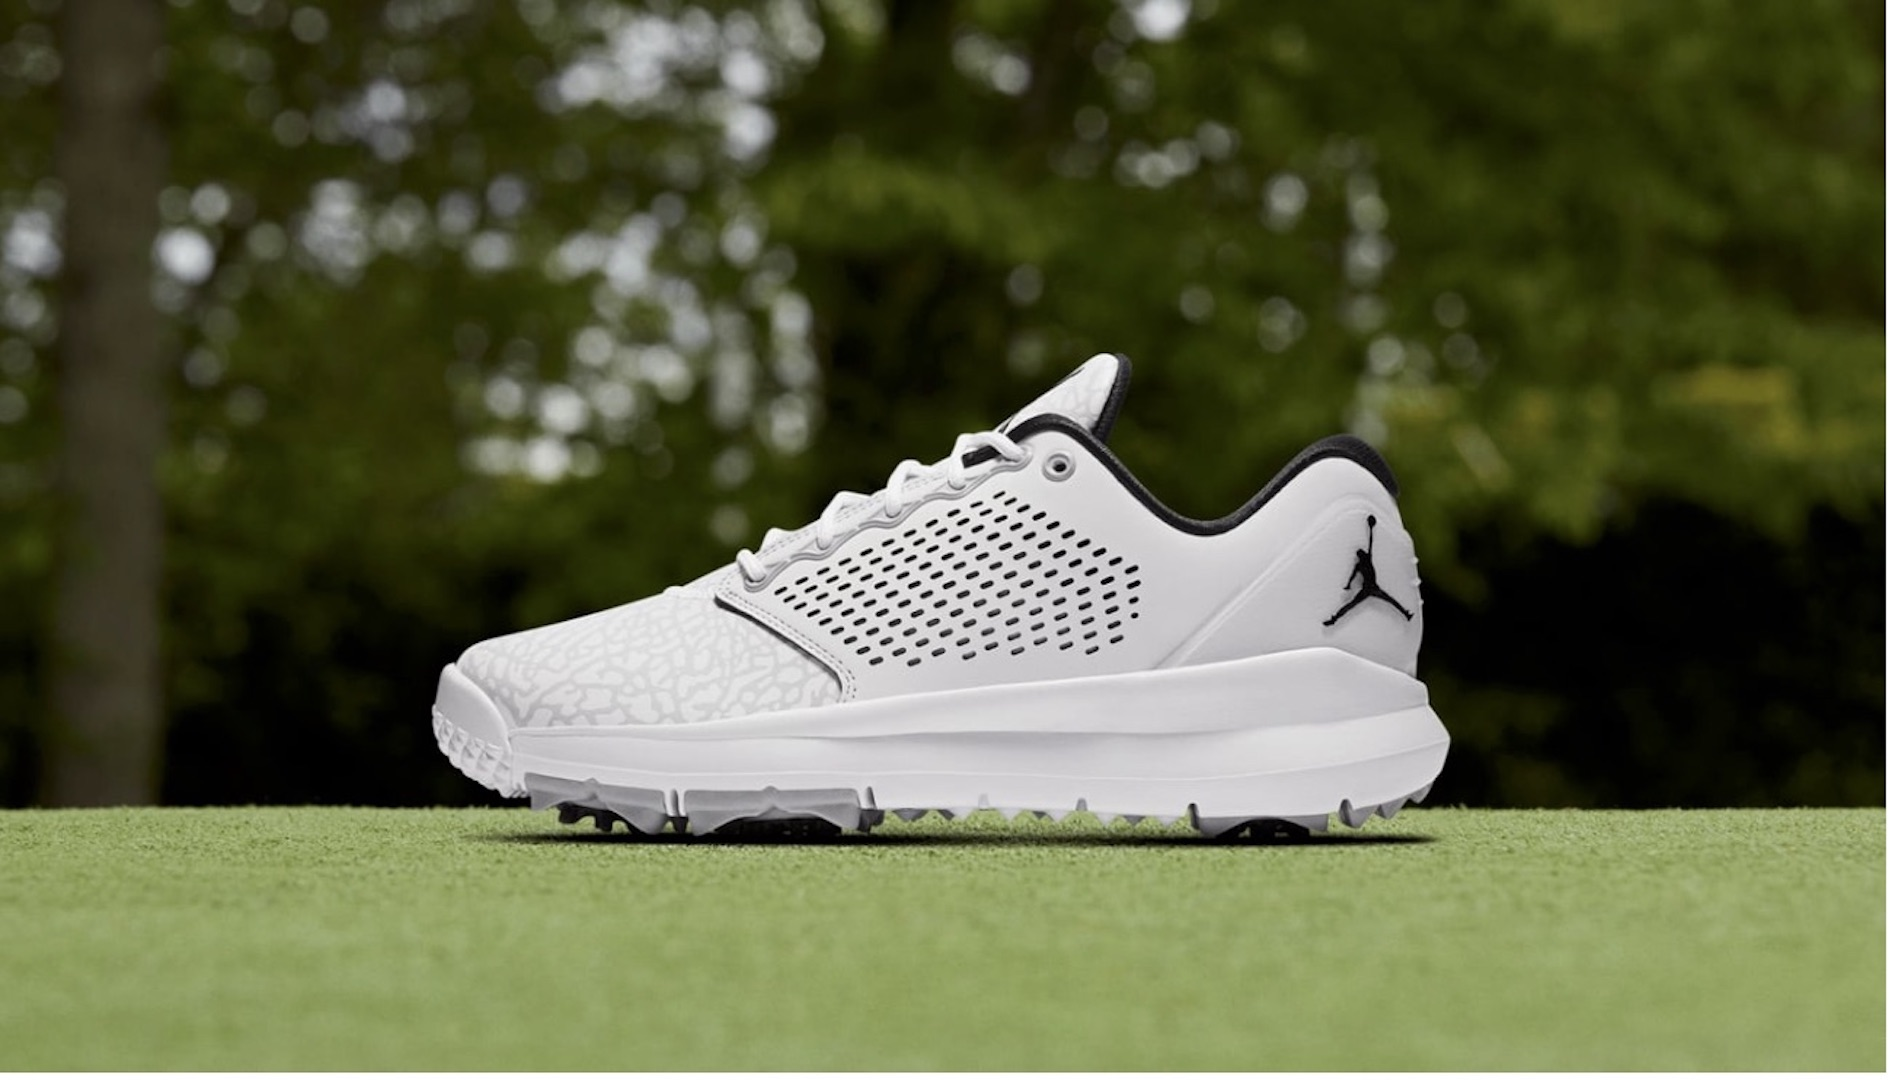 Nike release Air Jordan Trainer ST G golf shoes